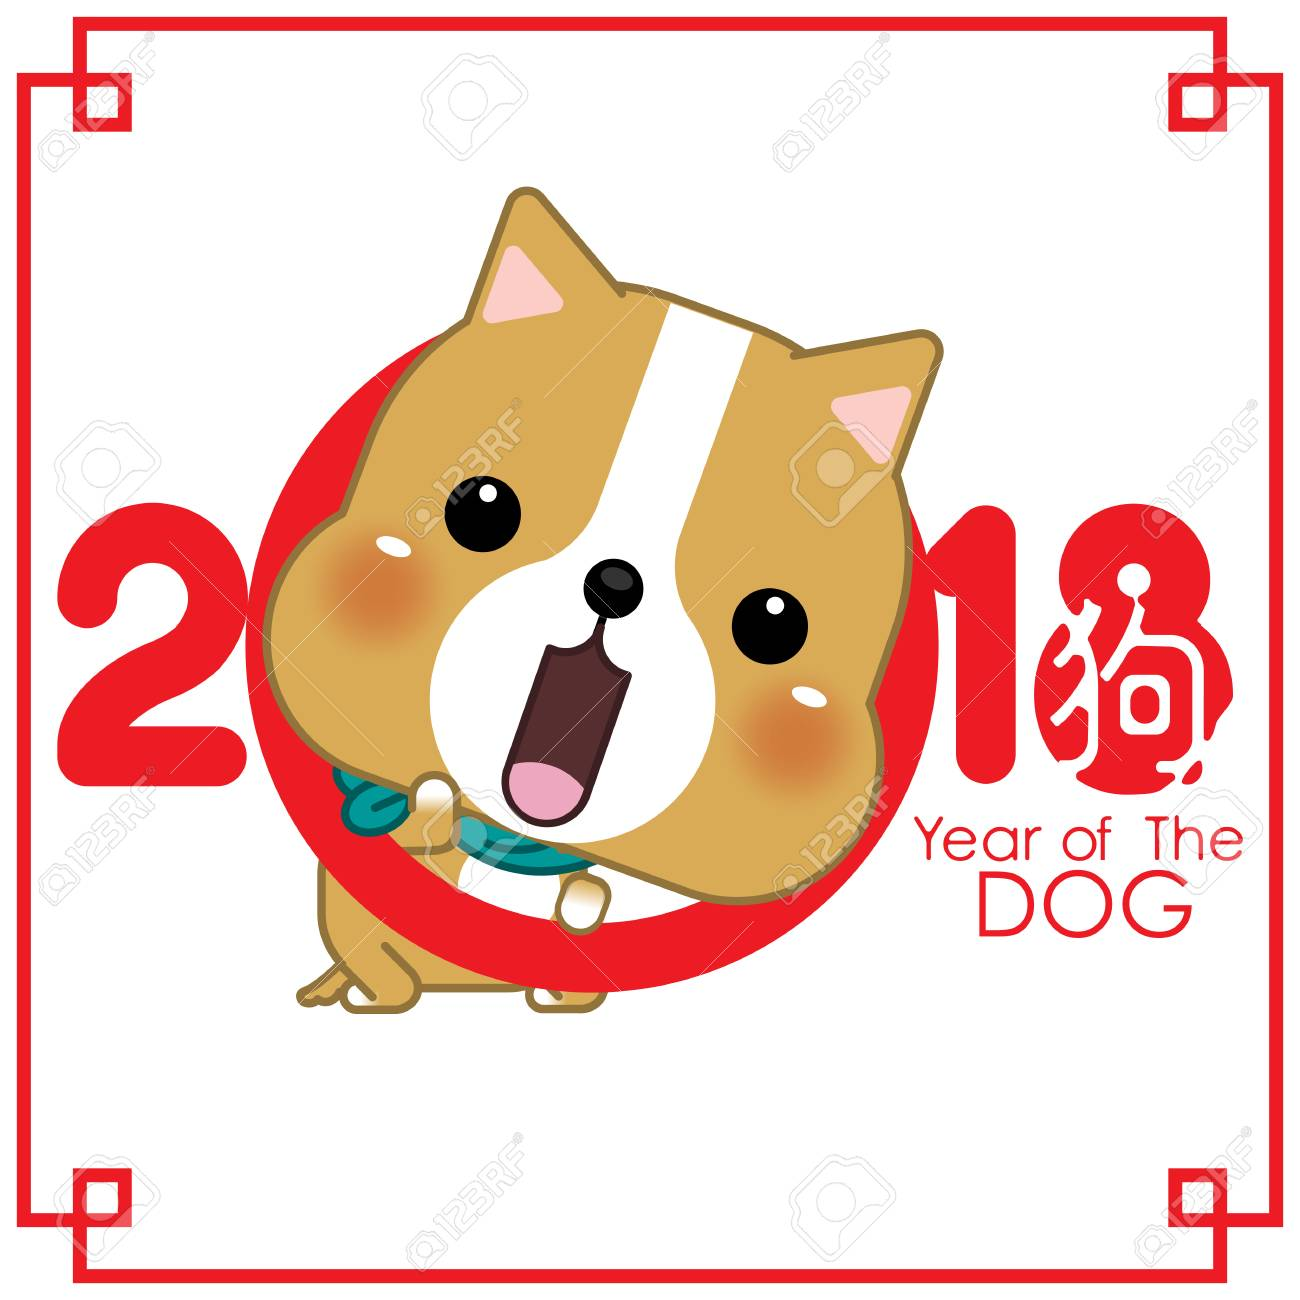 Chinese New Year Of The Dog Clipart.